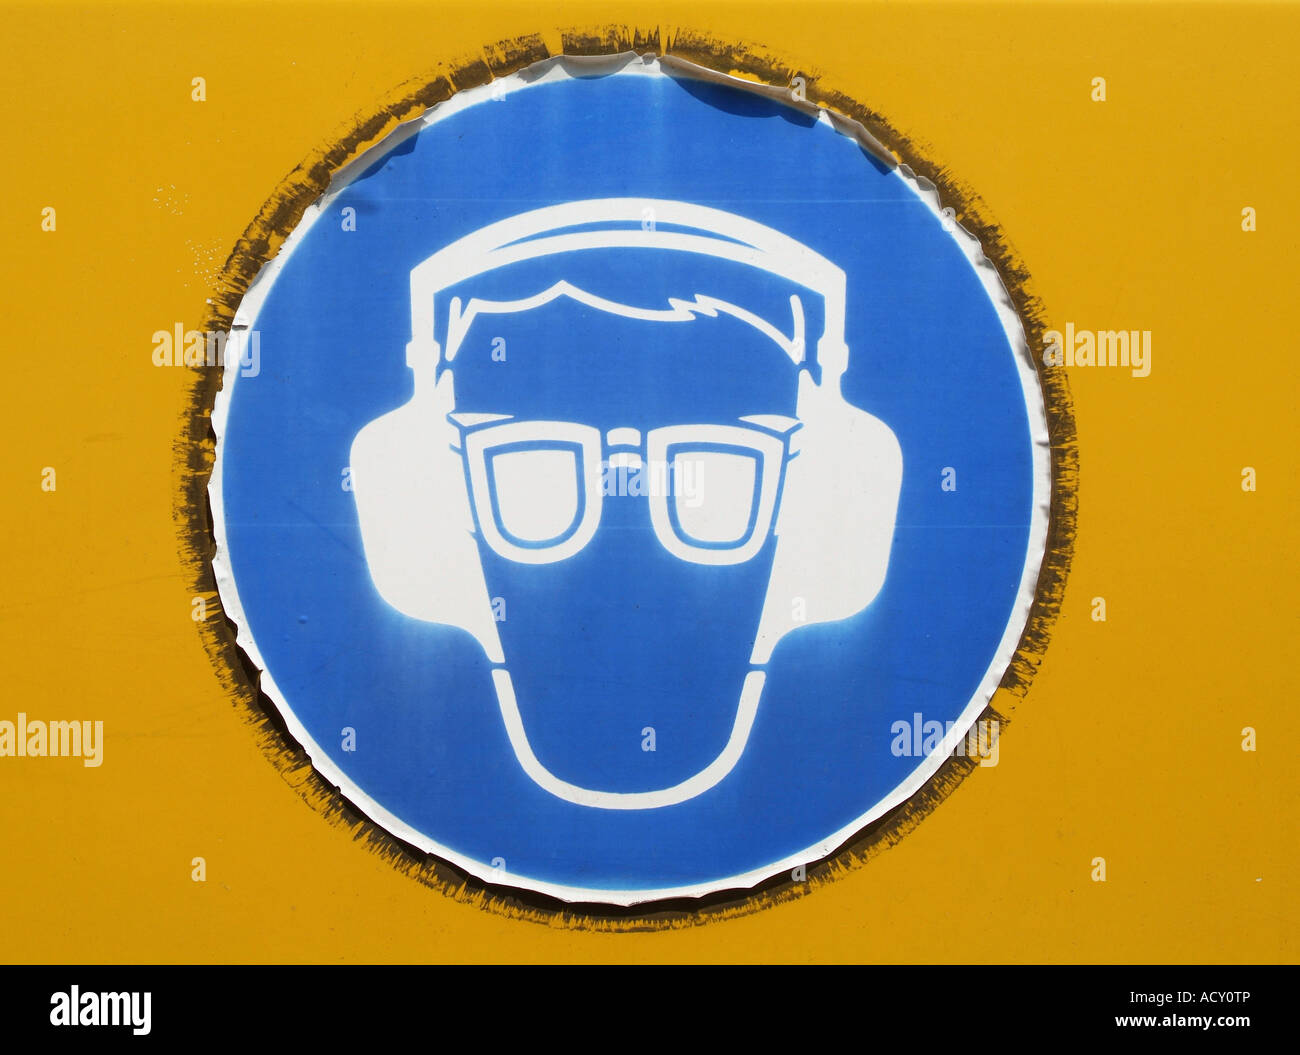 Mandatory Safety Sign Stock Photos Amp Mandatory Safety Sign